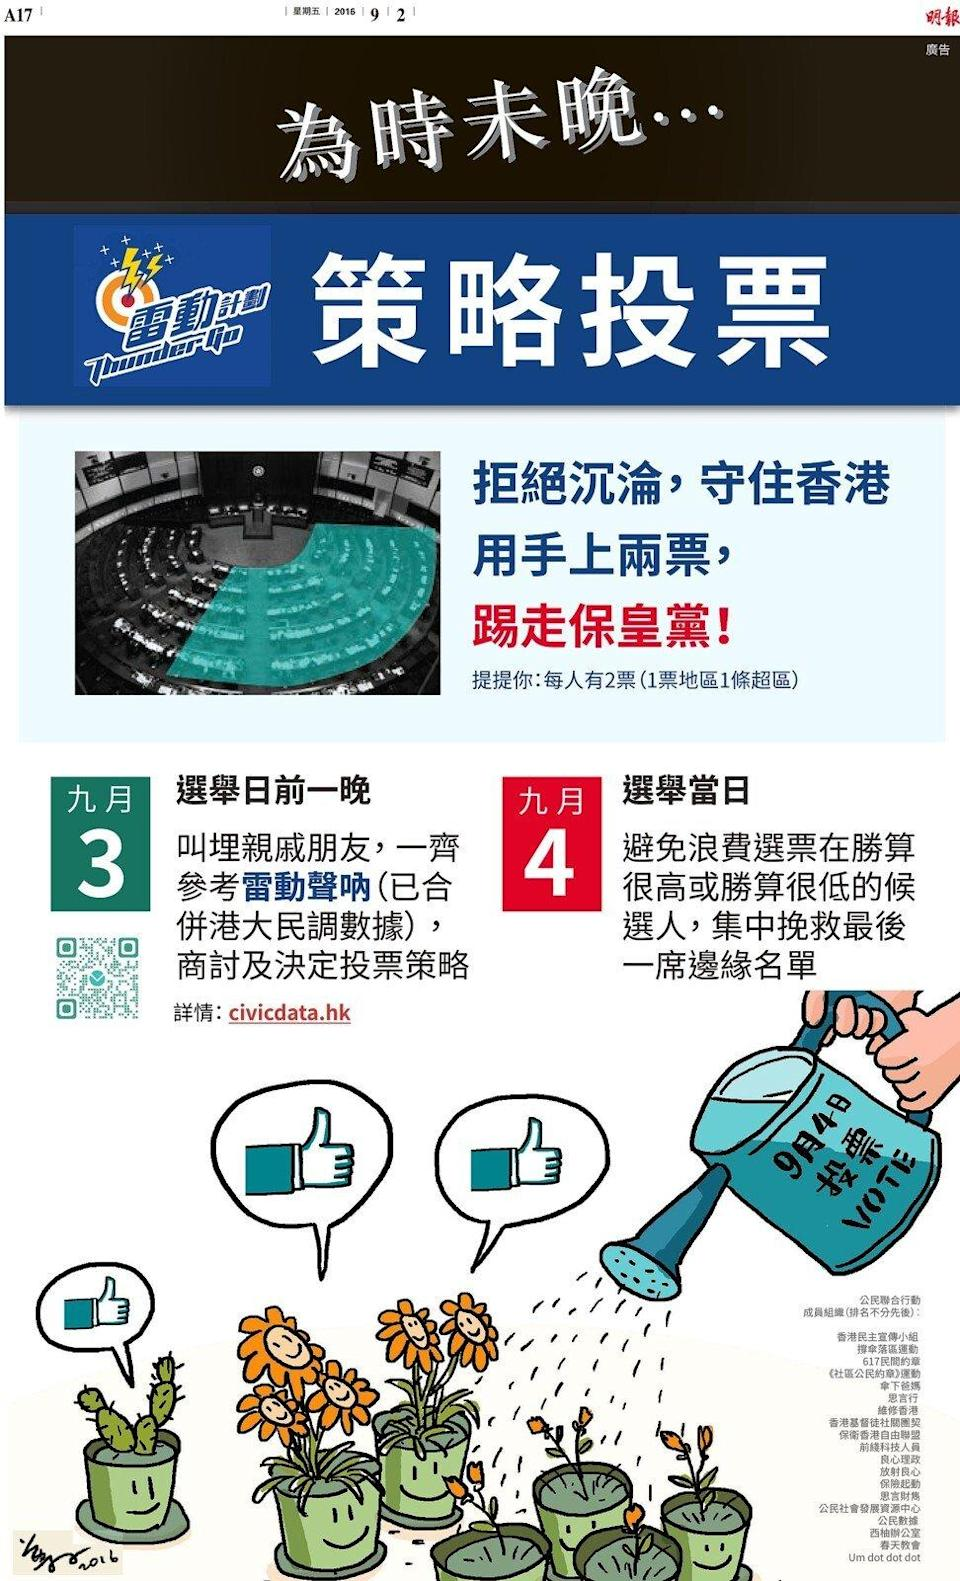 One of the adverts that alleged violated Hong Kong's election finance regulations. Photo: Handout